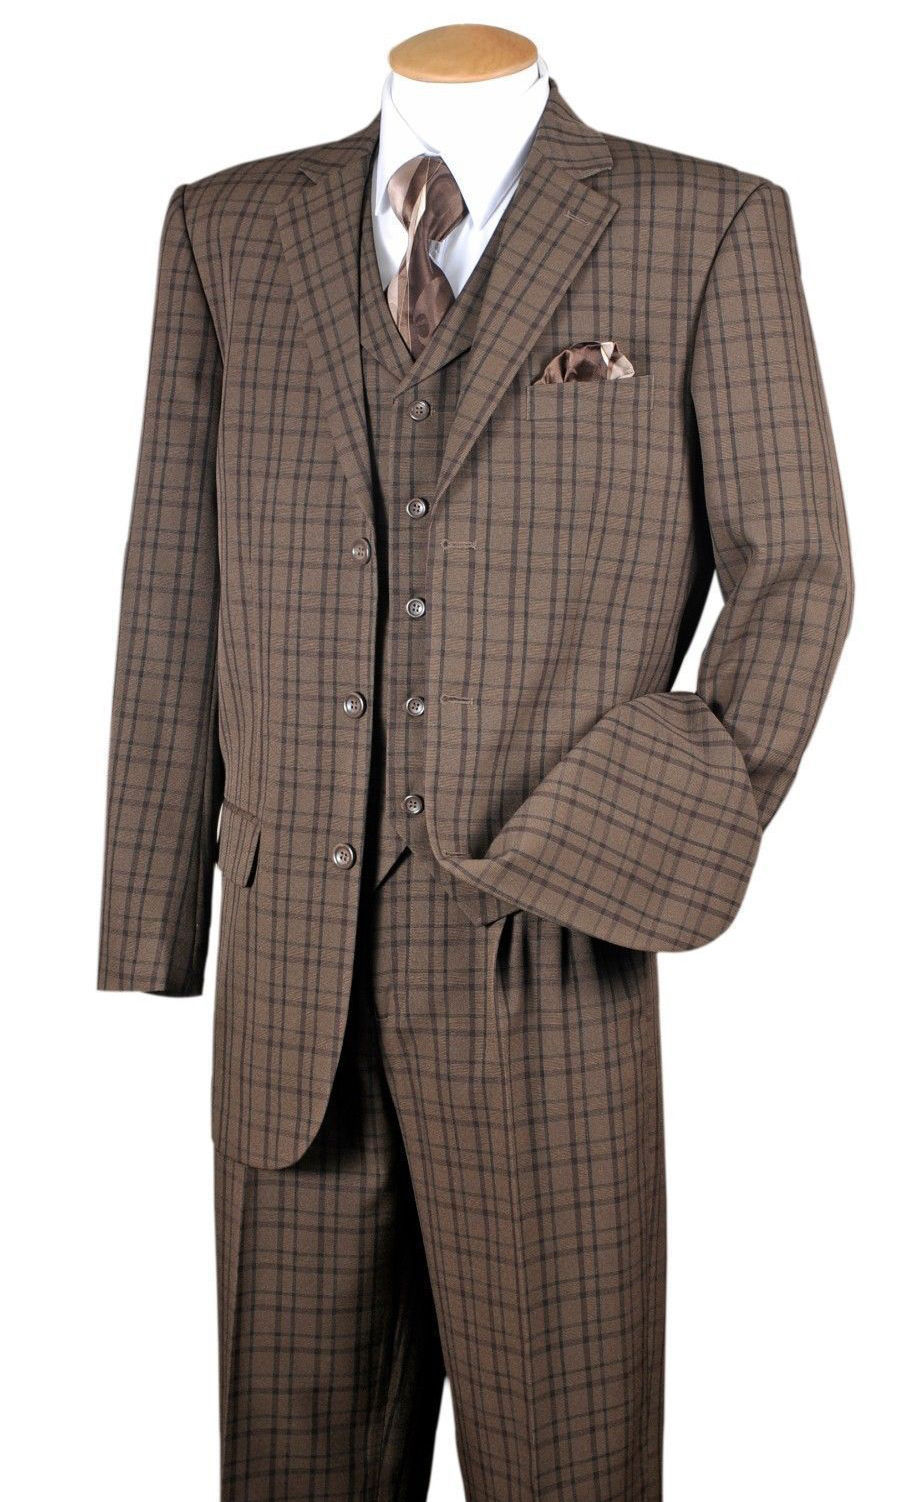 Milano Moda Suit 5802V6-Brown - Church Suits For Less